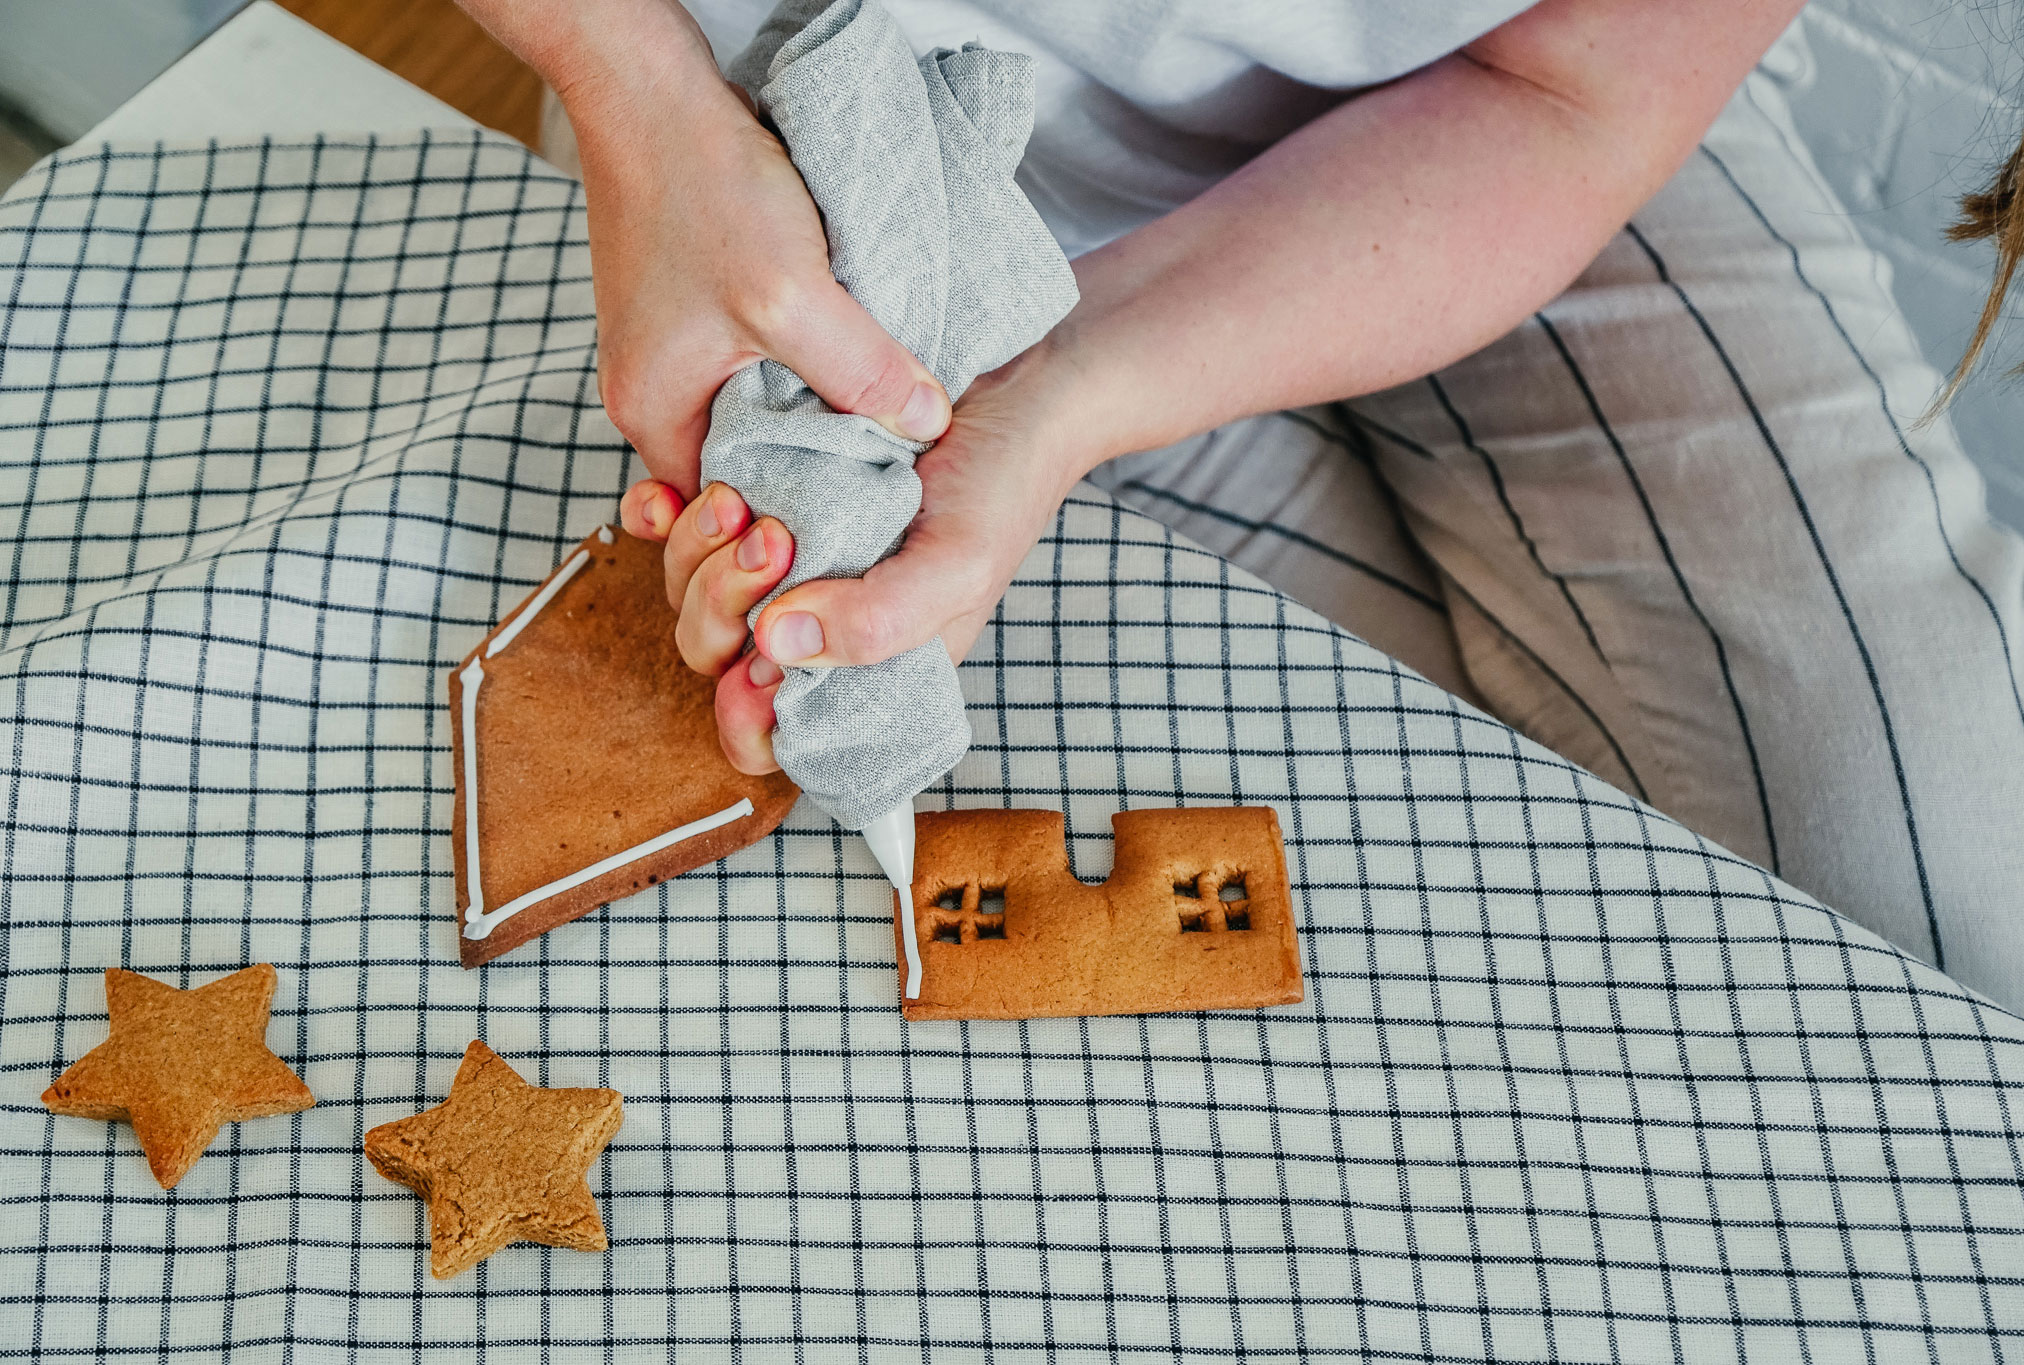 Making Memories Through Christmas Gingerbread Baking (With a Secret Healthy Twist)